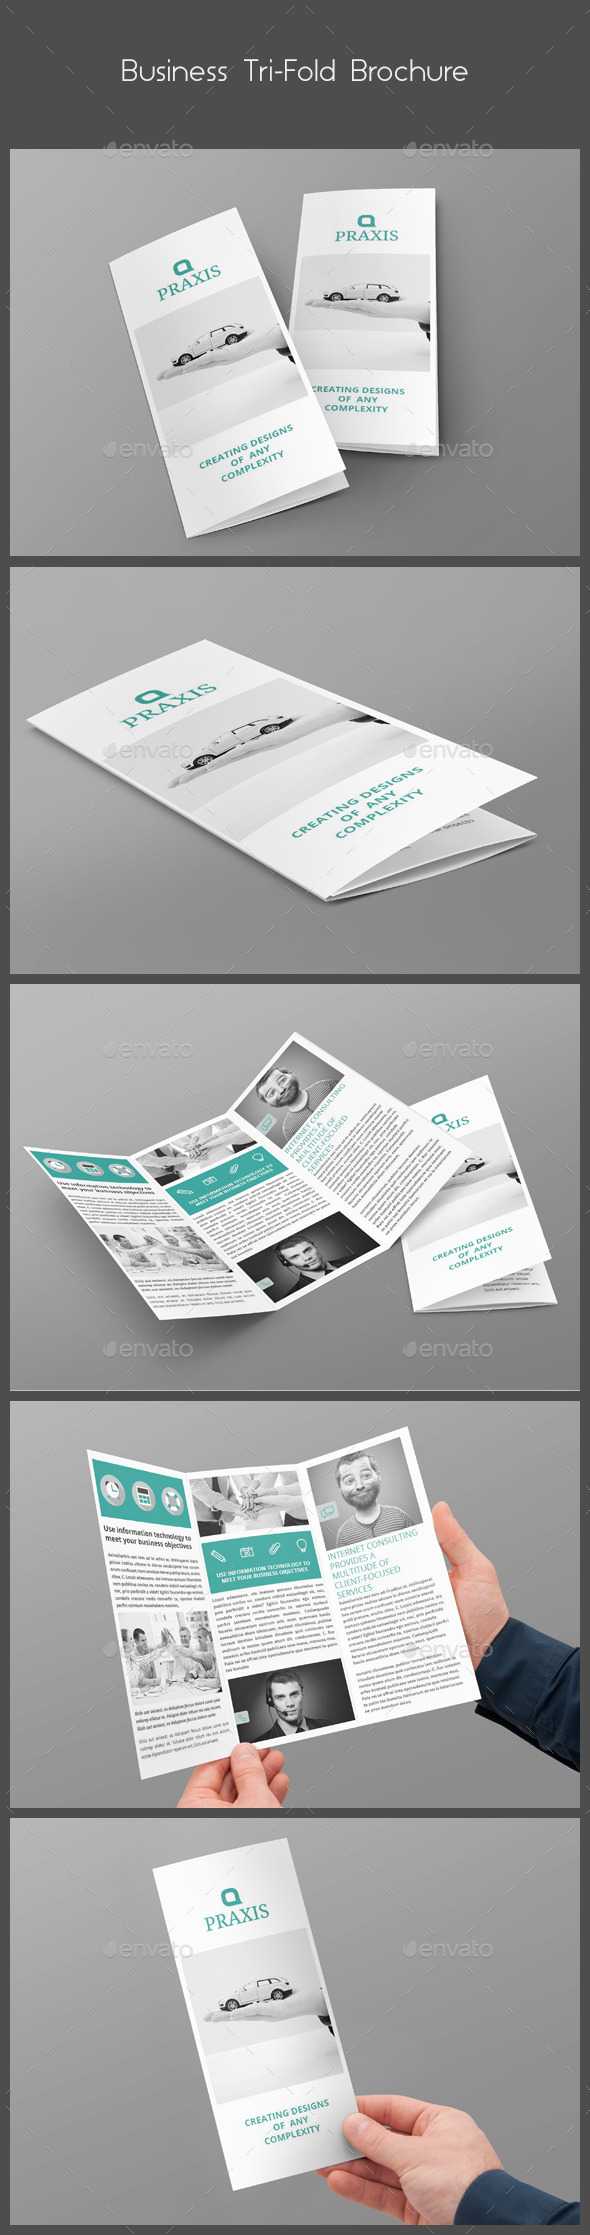 GraphicRiver Business Tri-Fold Brochure 9935231